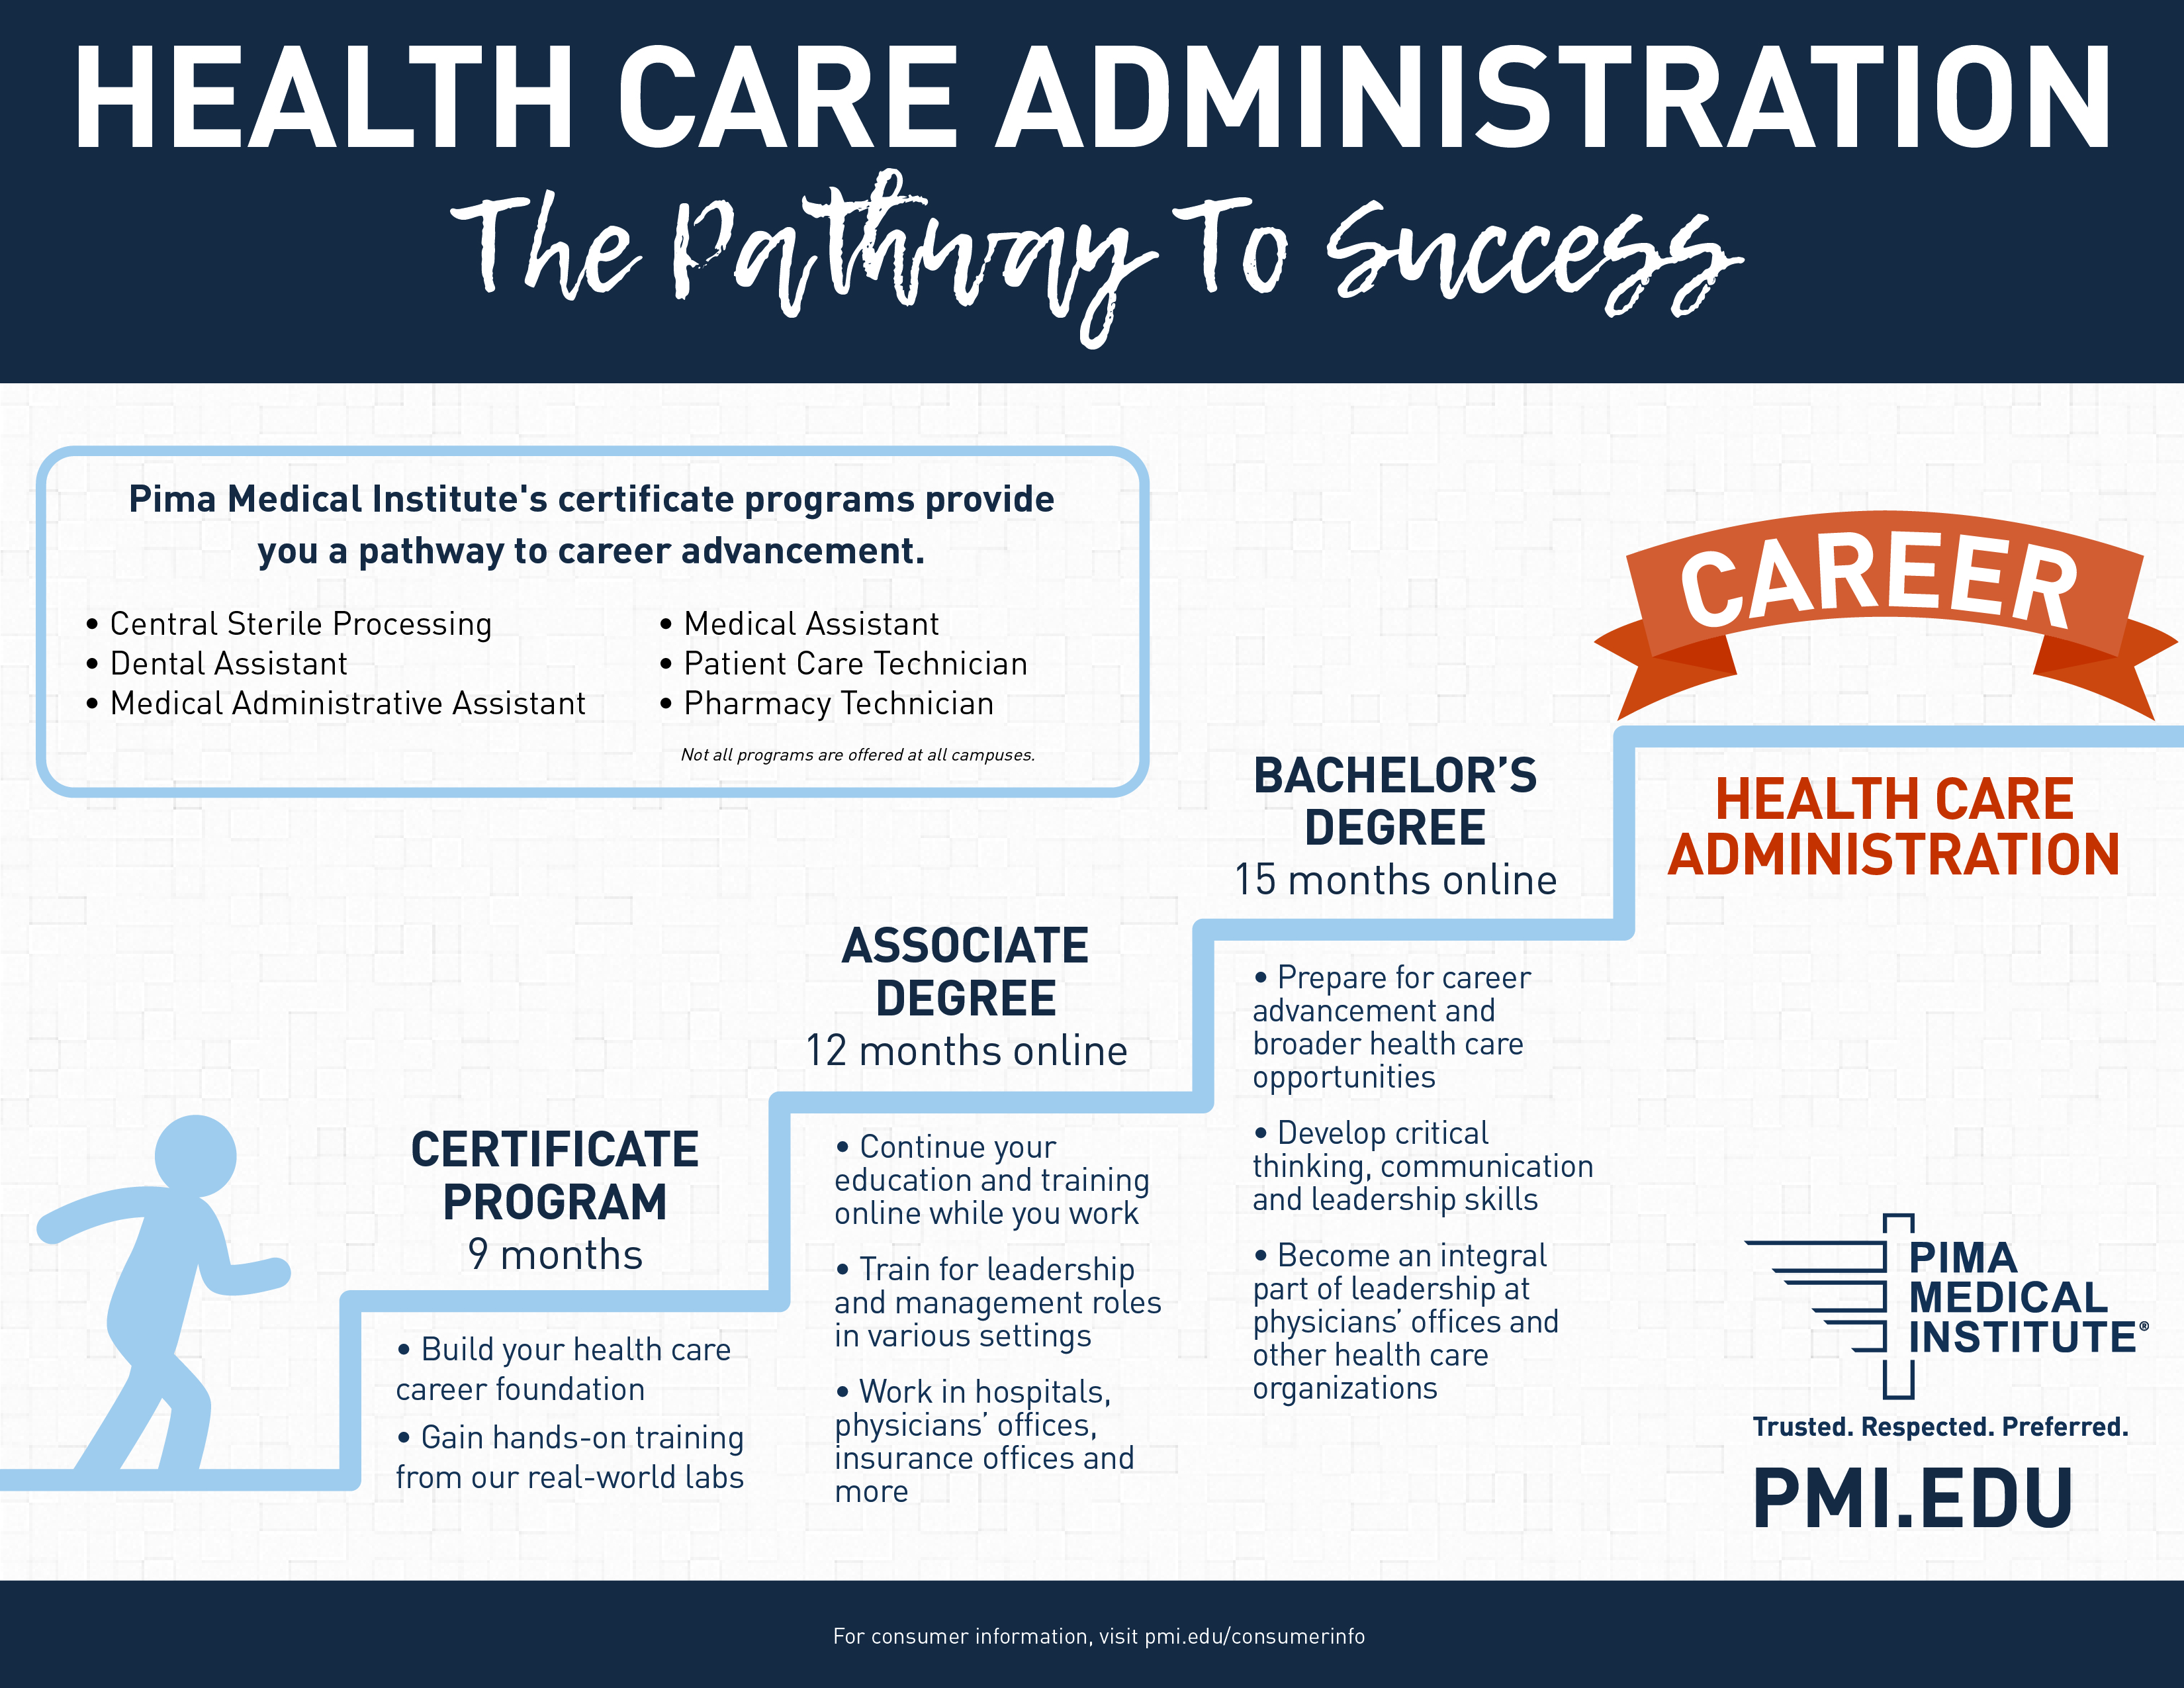 Pima medical institute expands its online health care here are some pathway students may take to further their careers through the hca online associate degree xflitez Choice Image